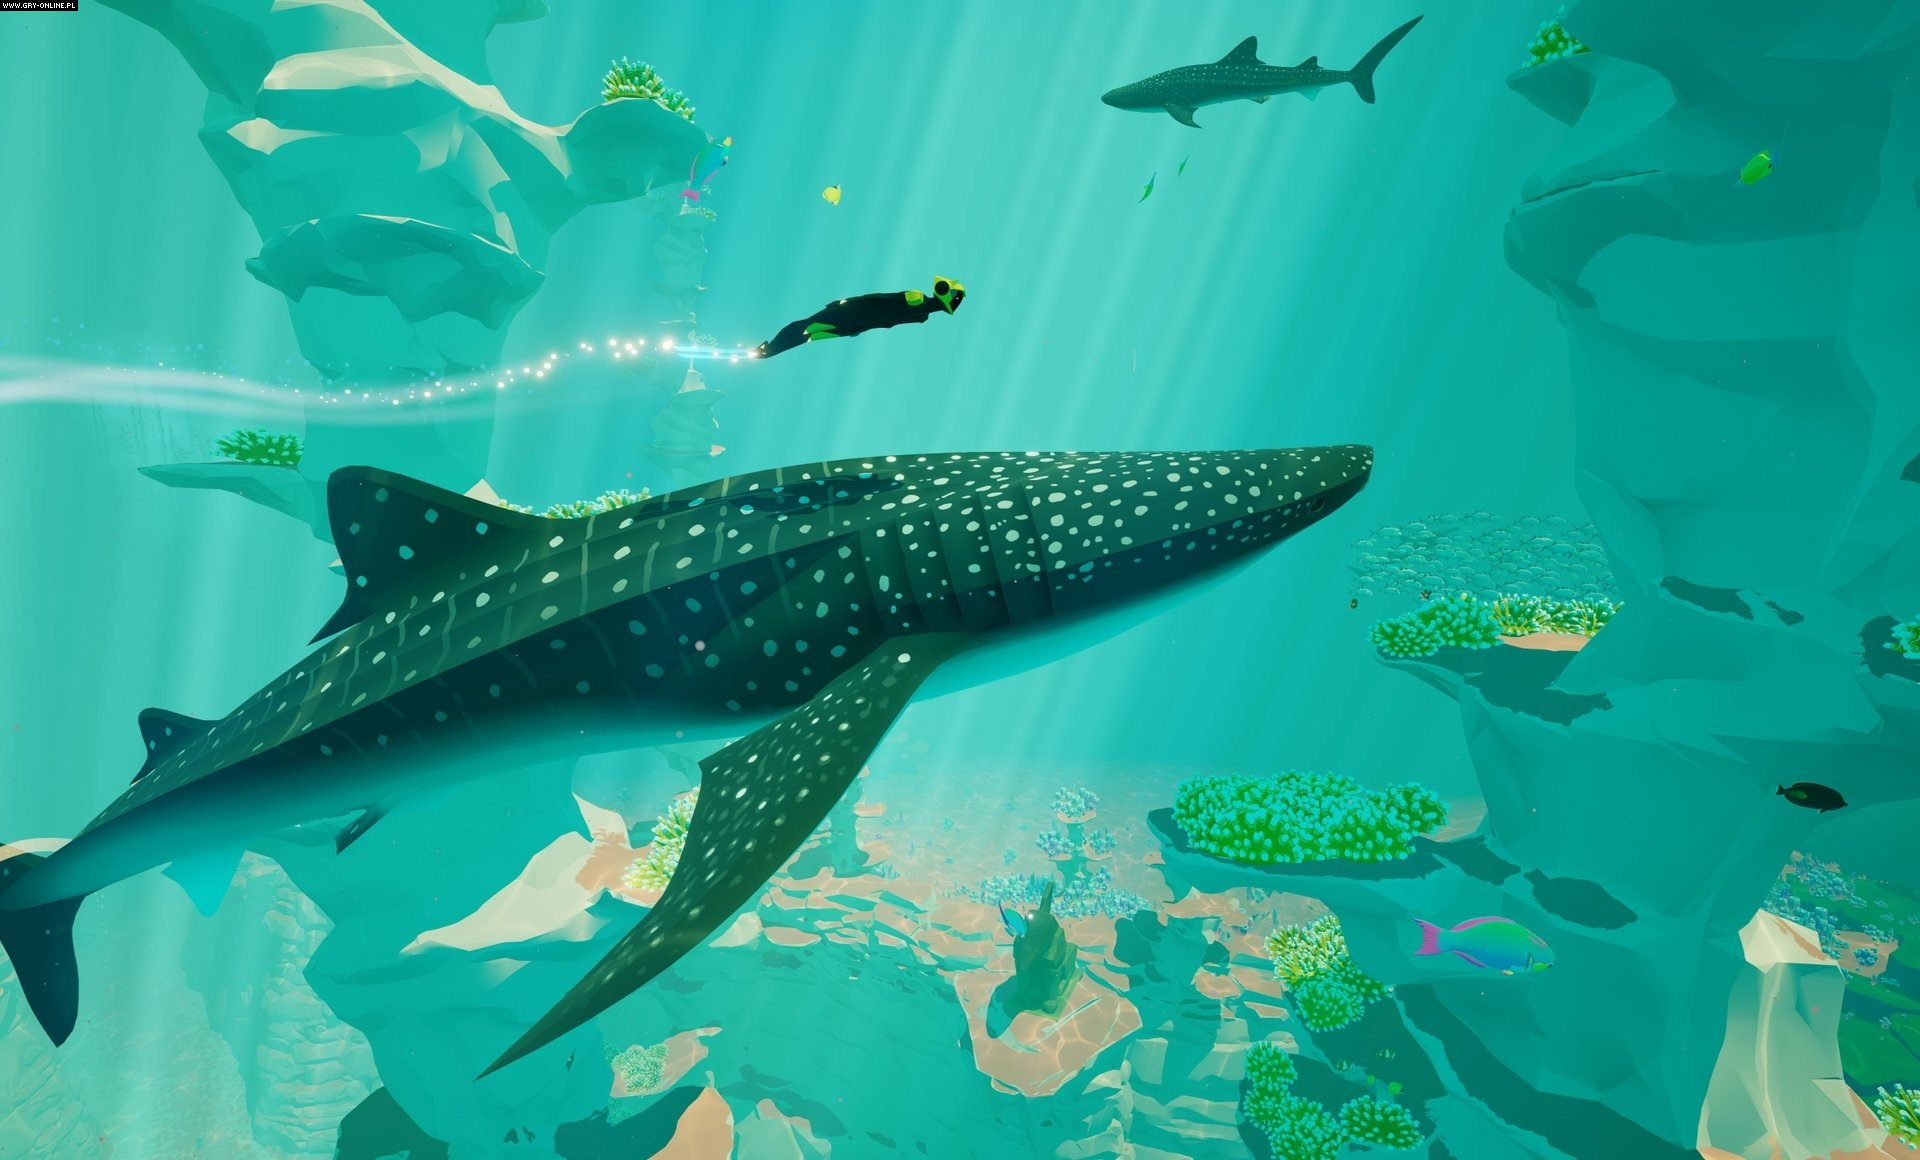 Abzu PC, PS4 Gry Screen 3/20, Giant Squid, 505 Games